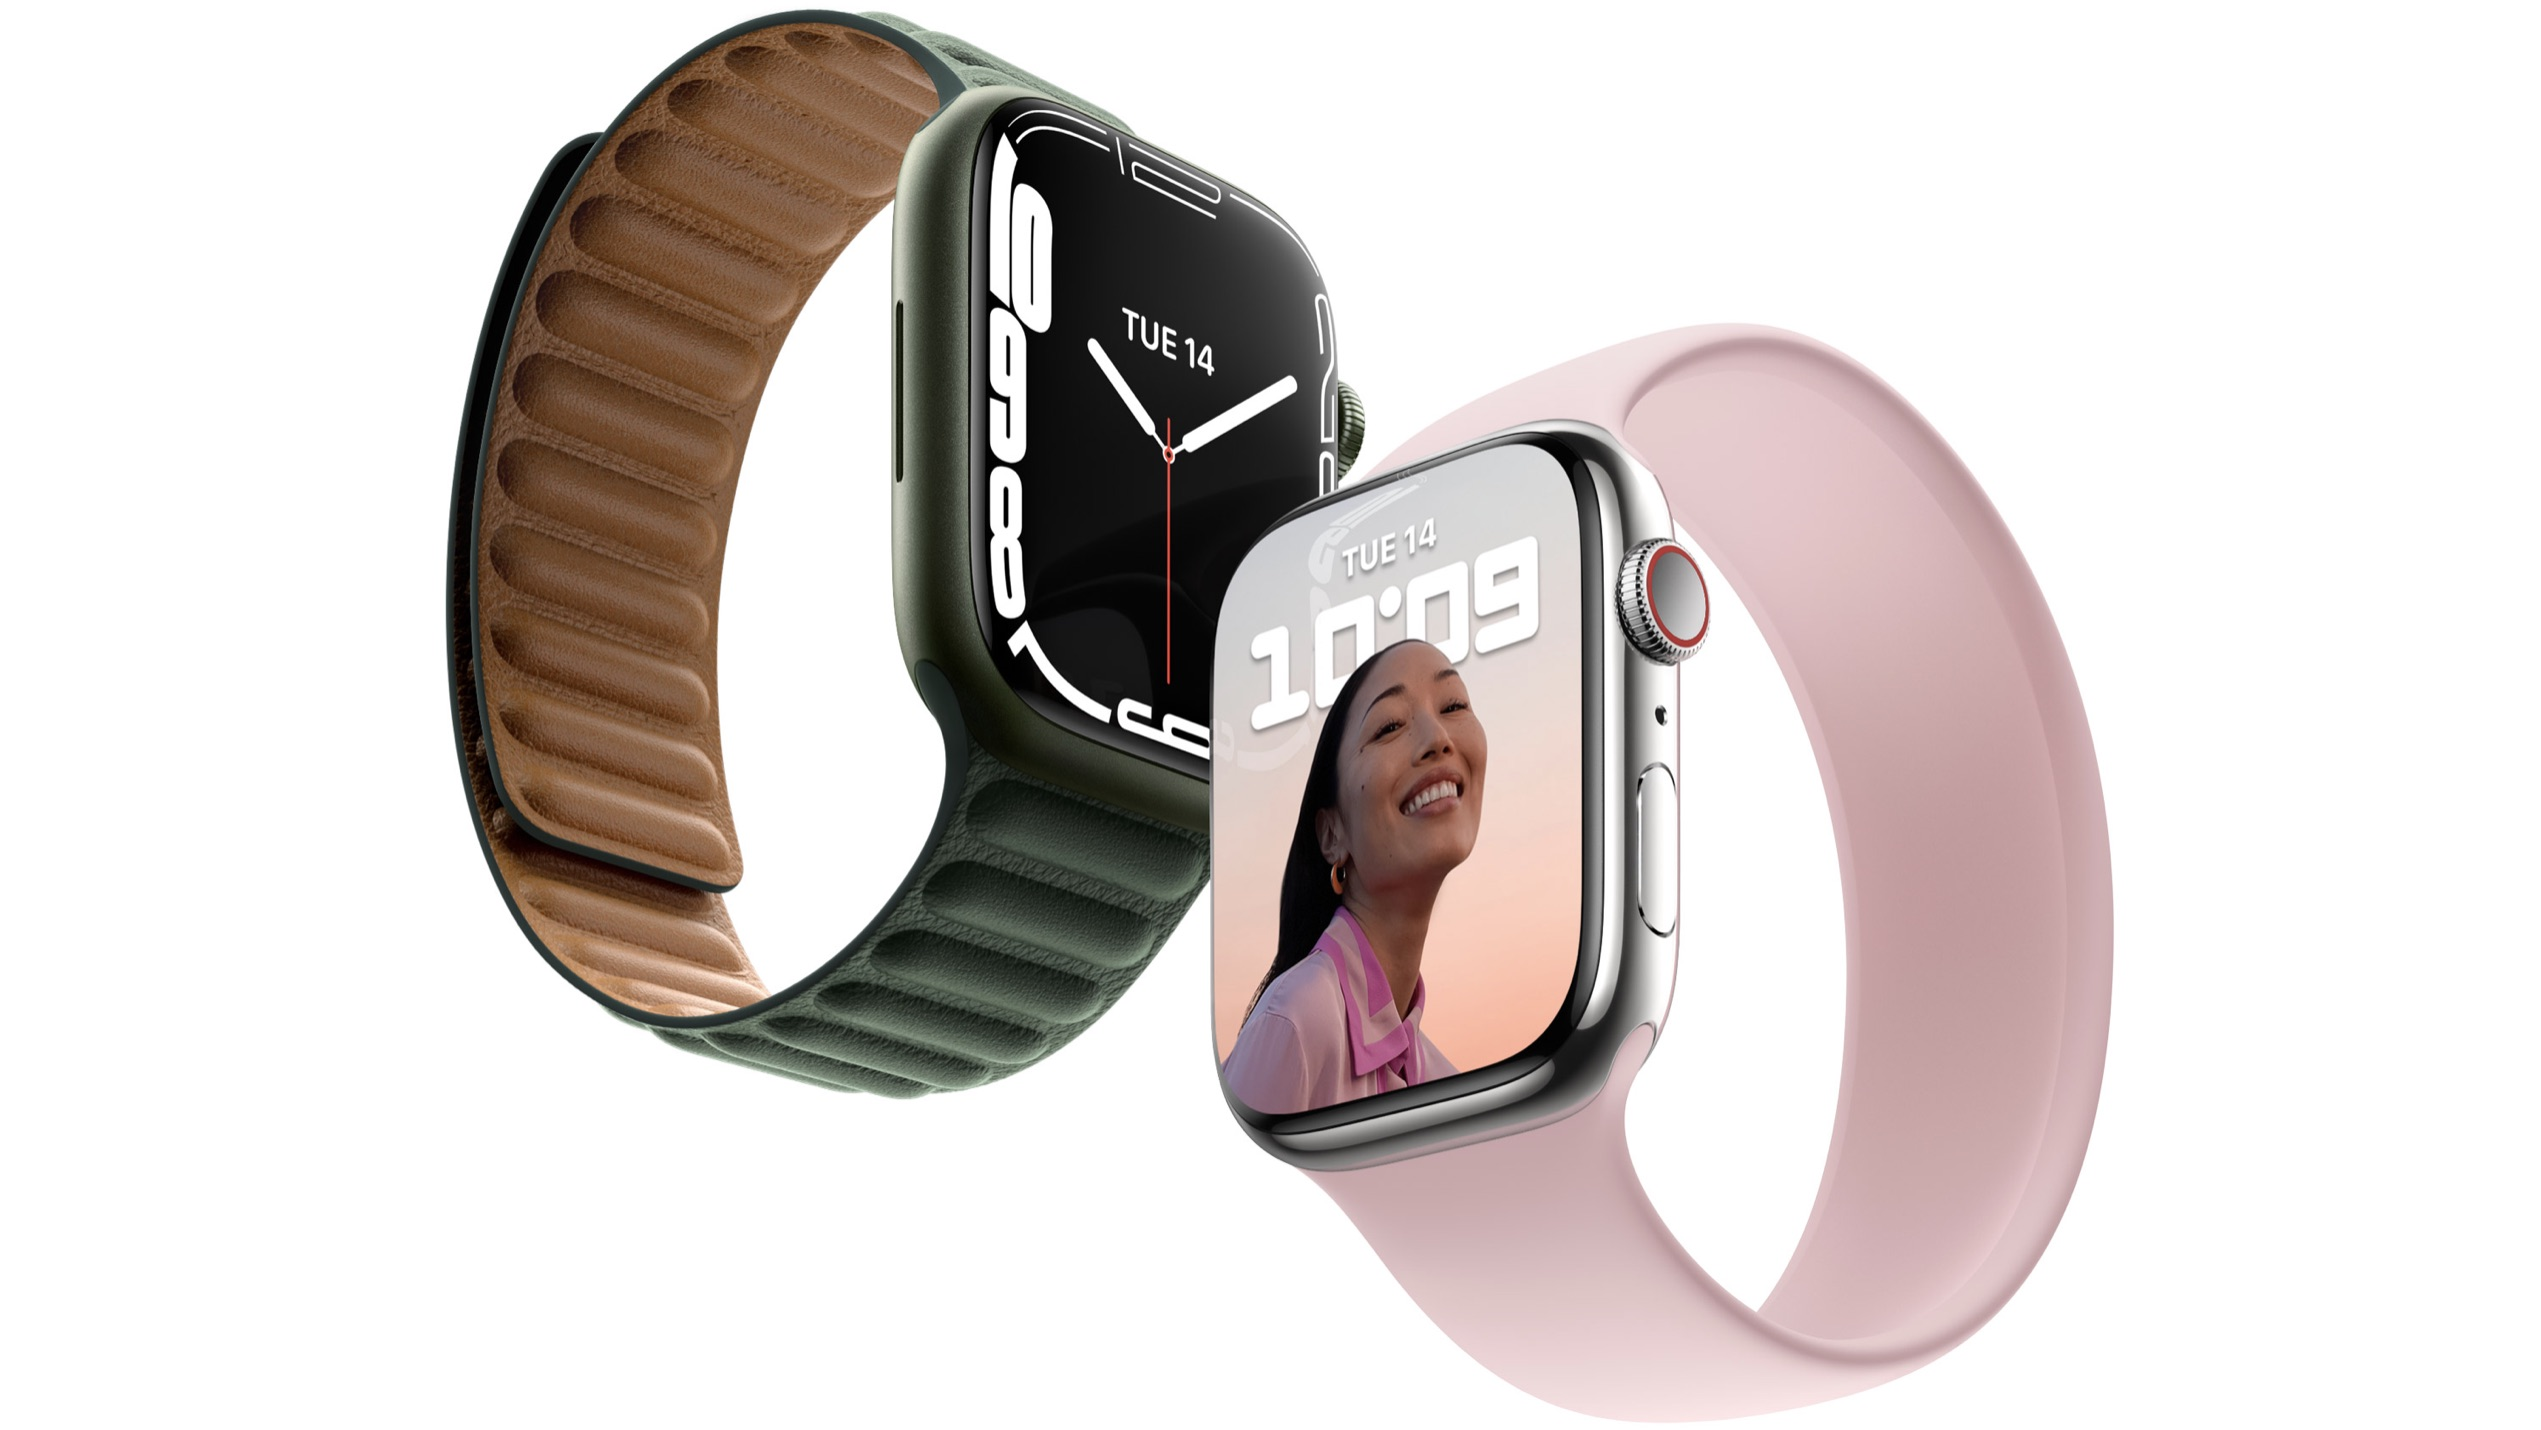 Apple Watch Series 7 to Come in 41mm and 45mm Case Sizes, Will Be Compatible With Older Bands